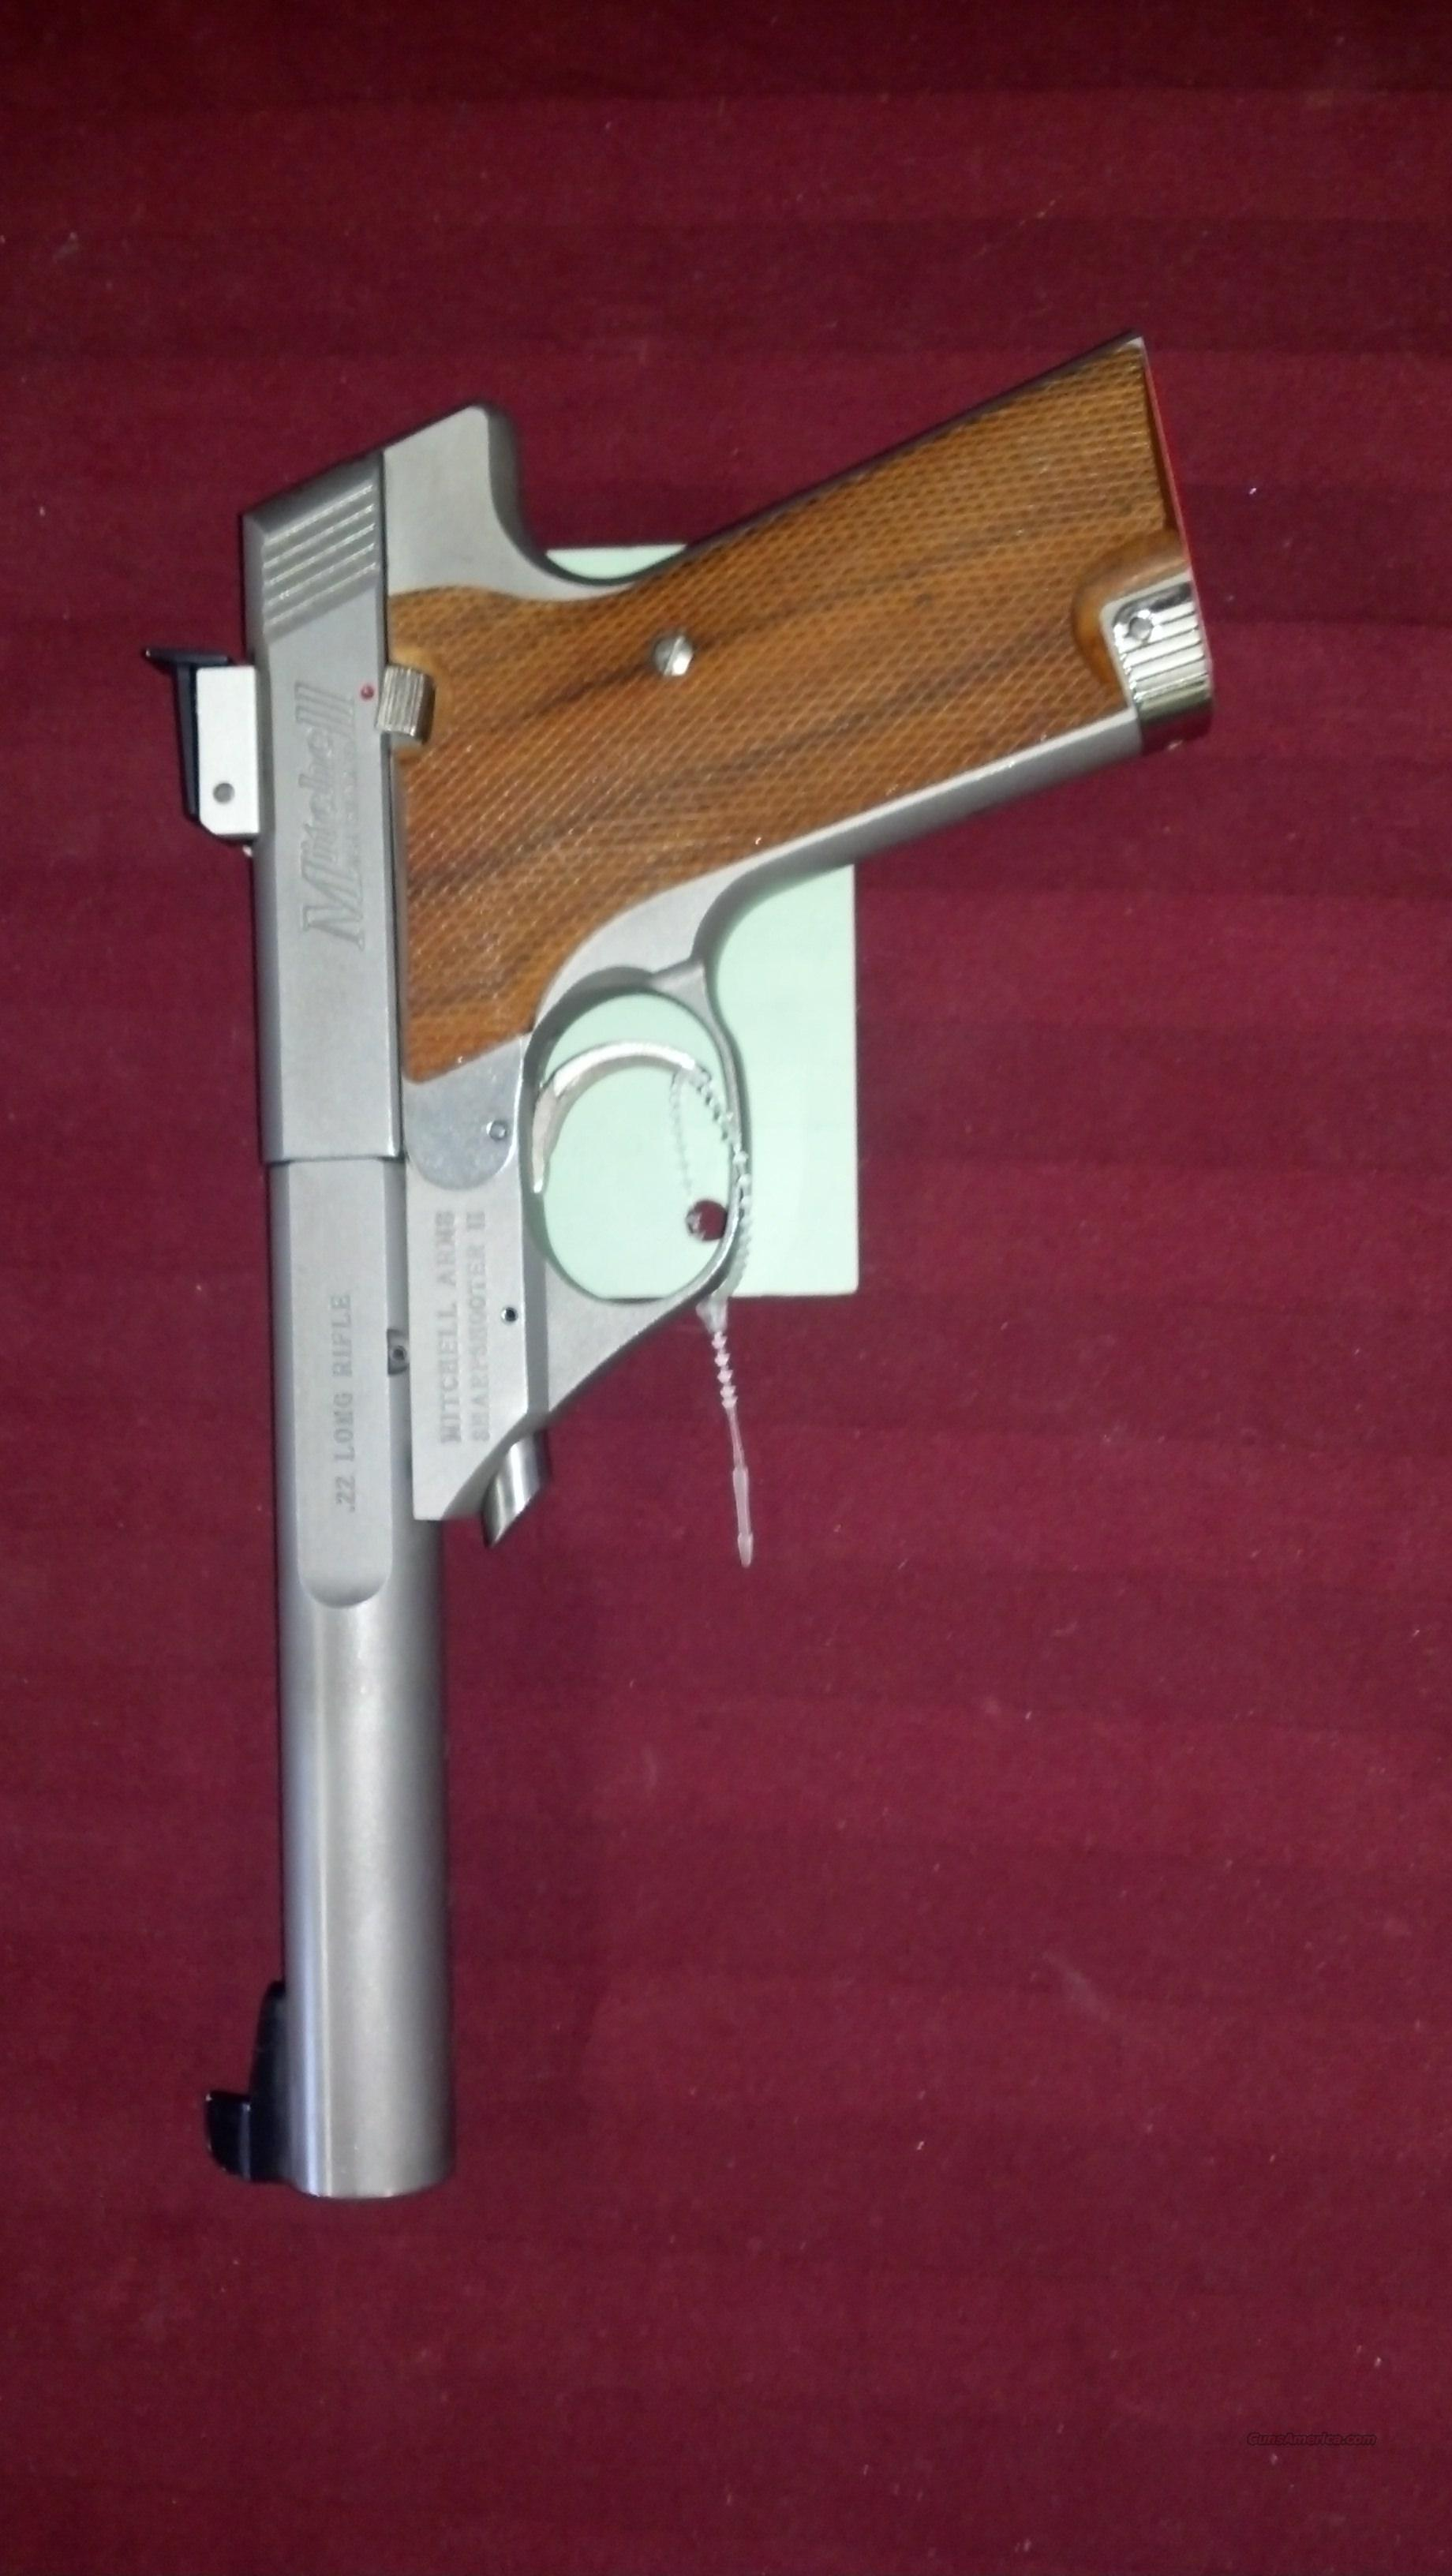 mitchell sharp shooter  Guns > Pistols > Mitchell Arms Pistols